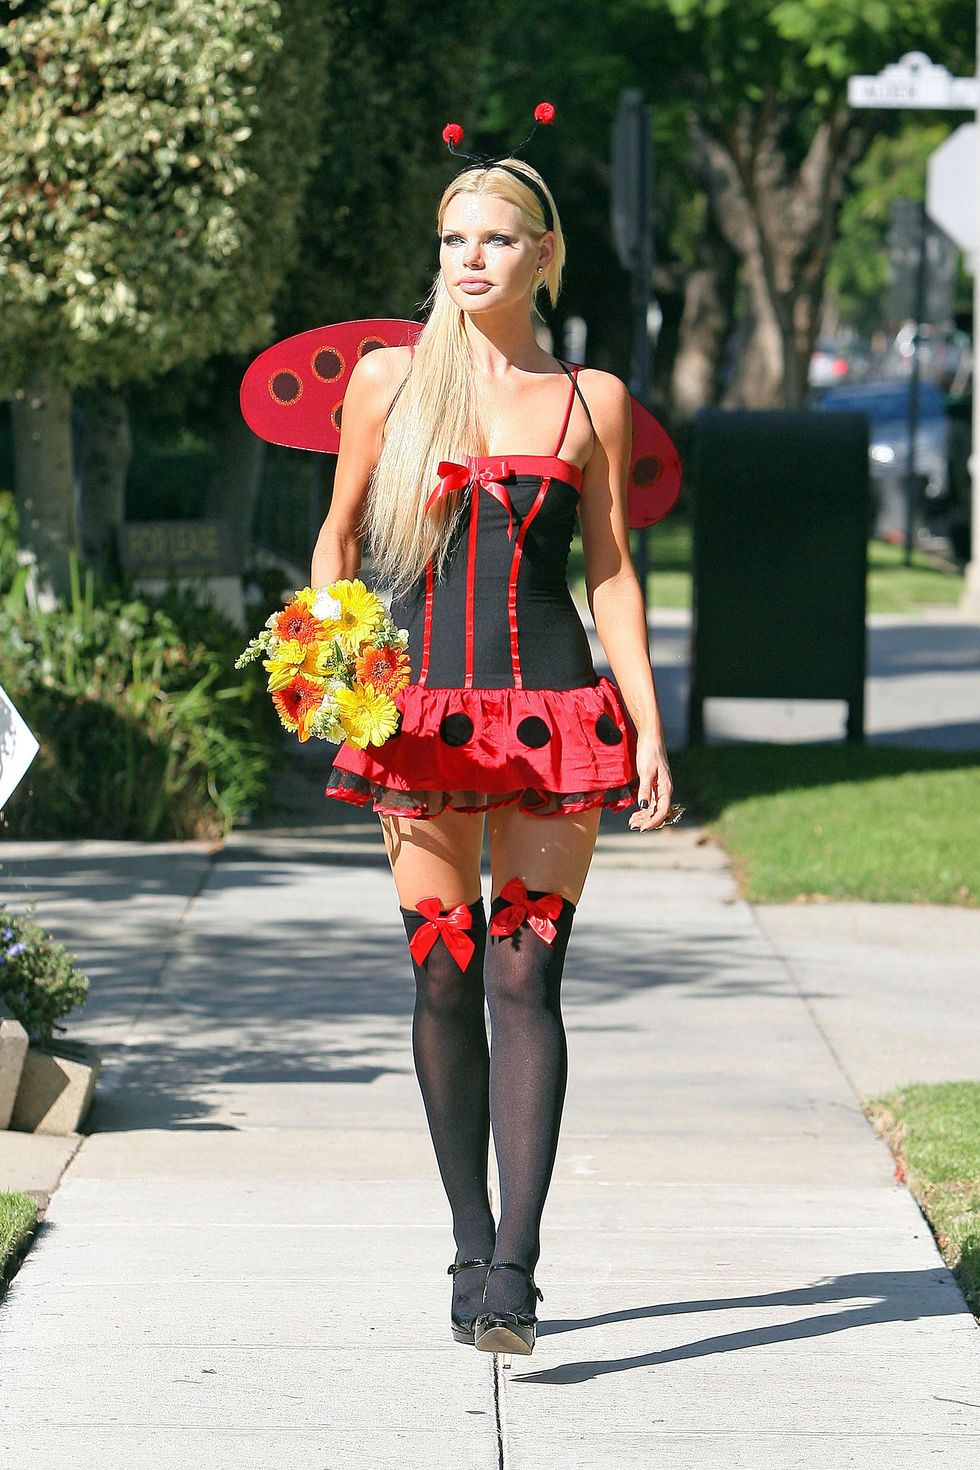 sophie-monk-as-sexy-ladybug-at-halloween-party-in-los-angeles-01